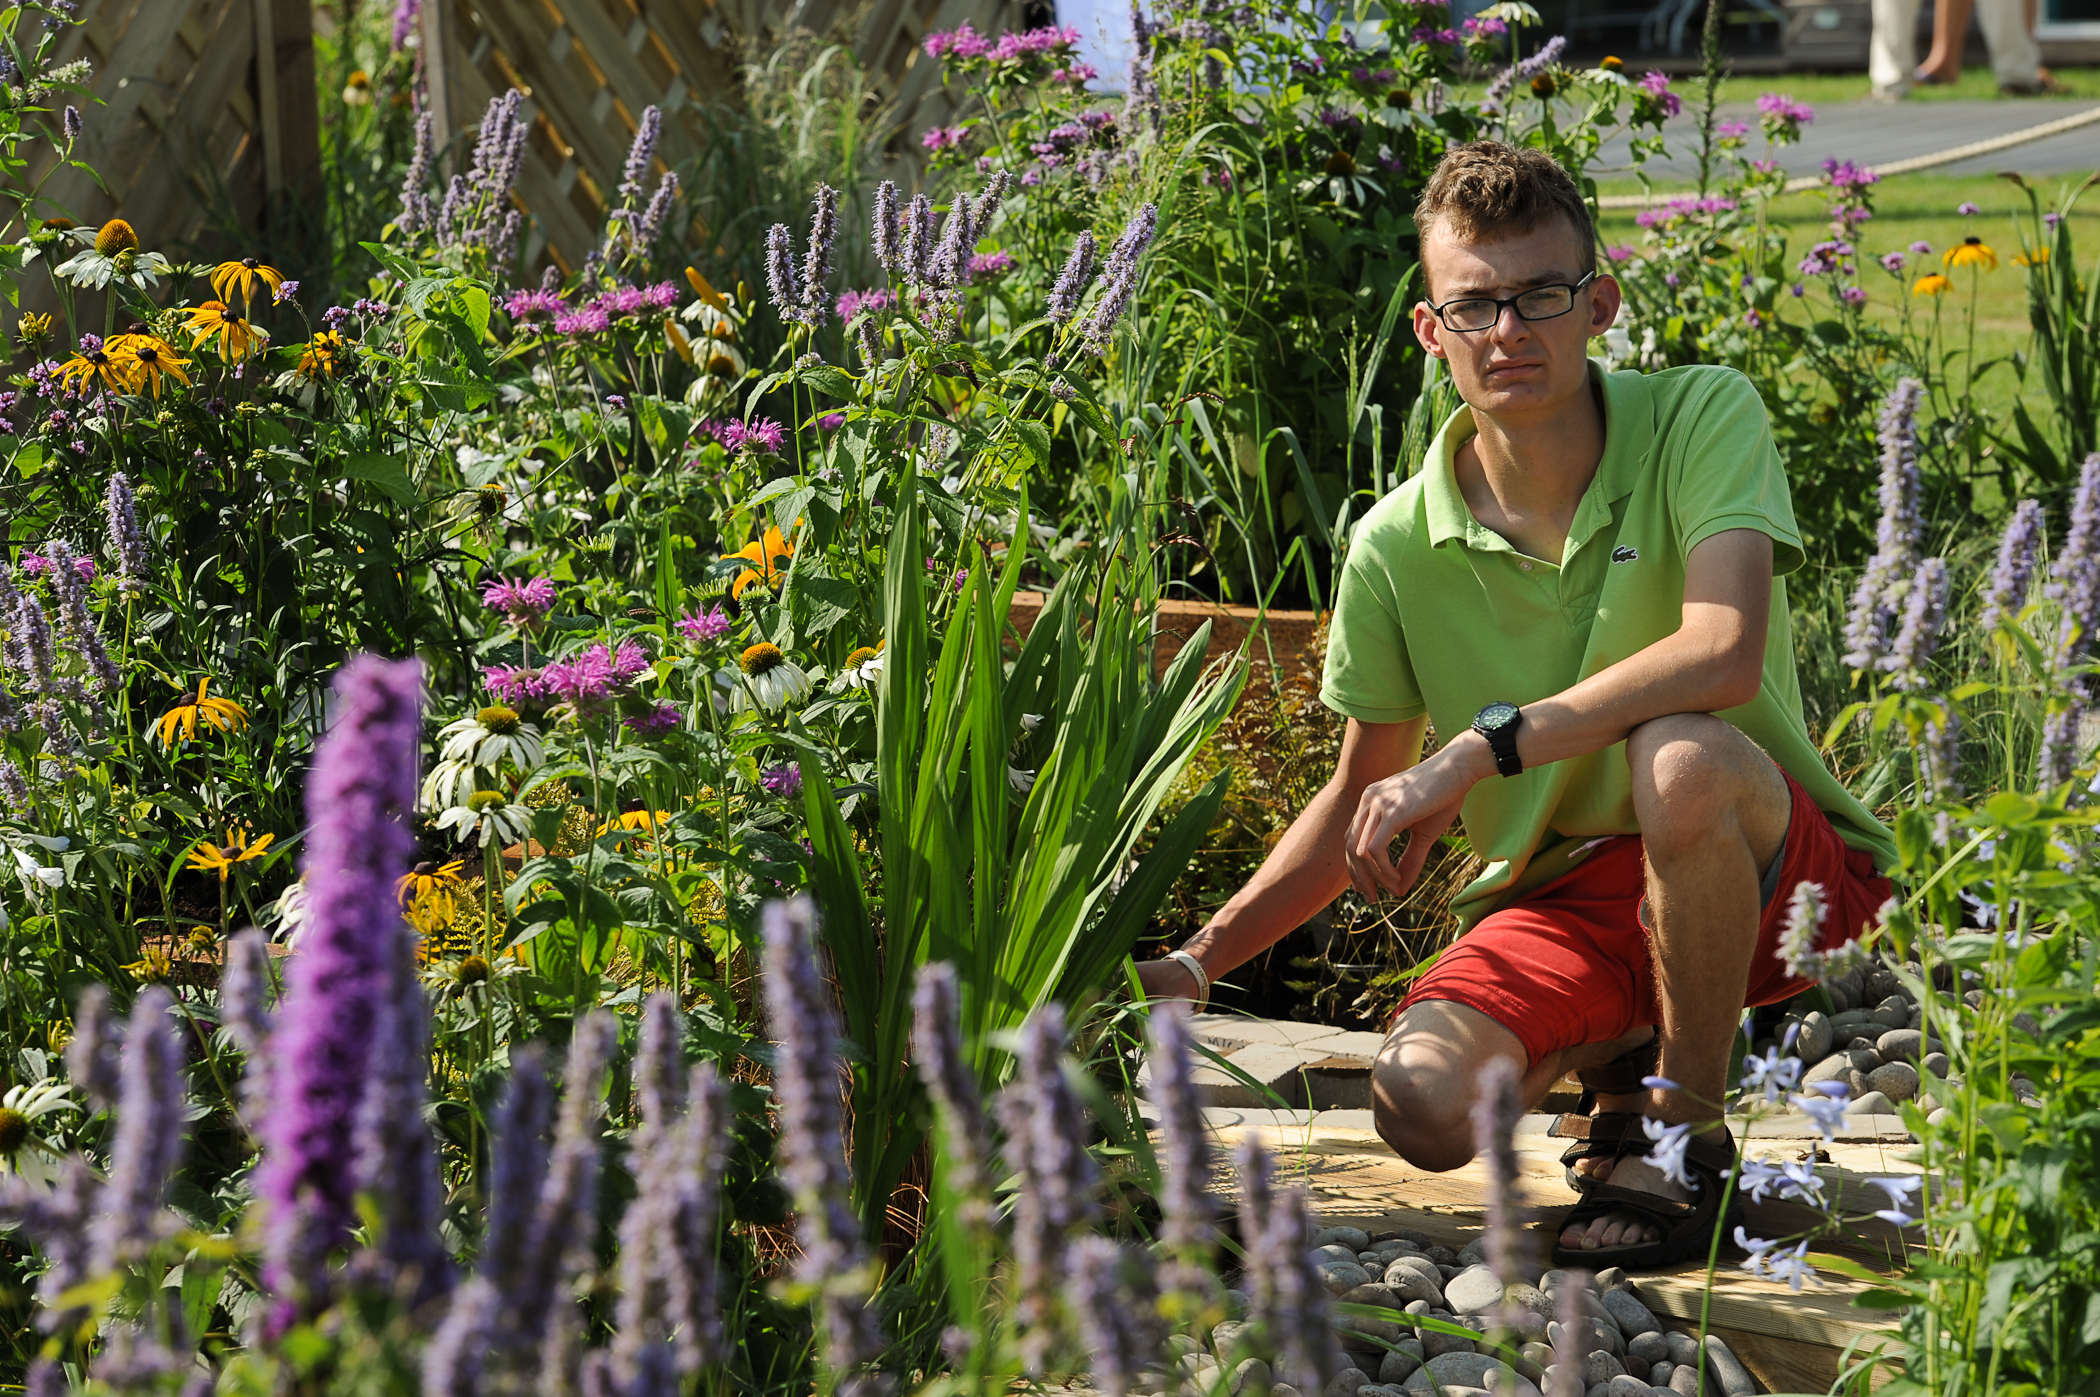 Reaseheath landscape gardener wins place in national for Landscape gardeners